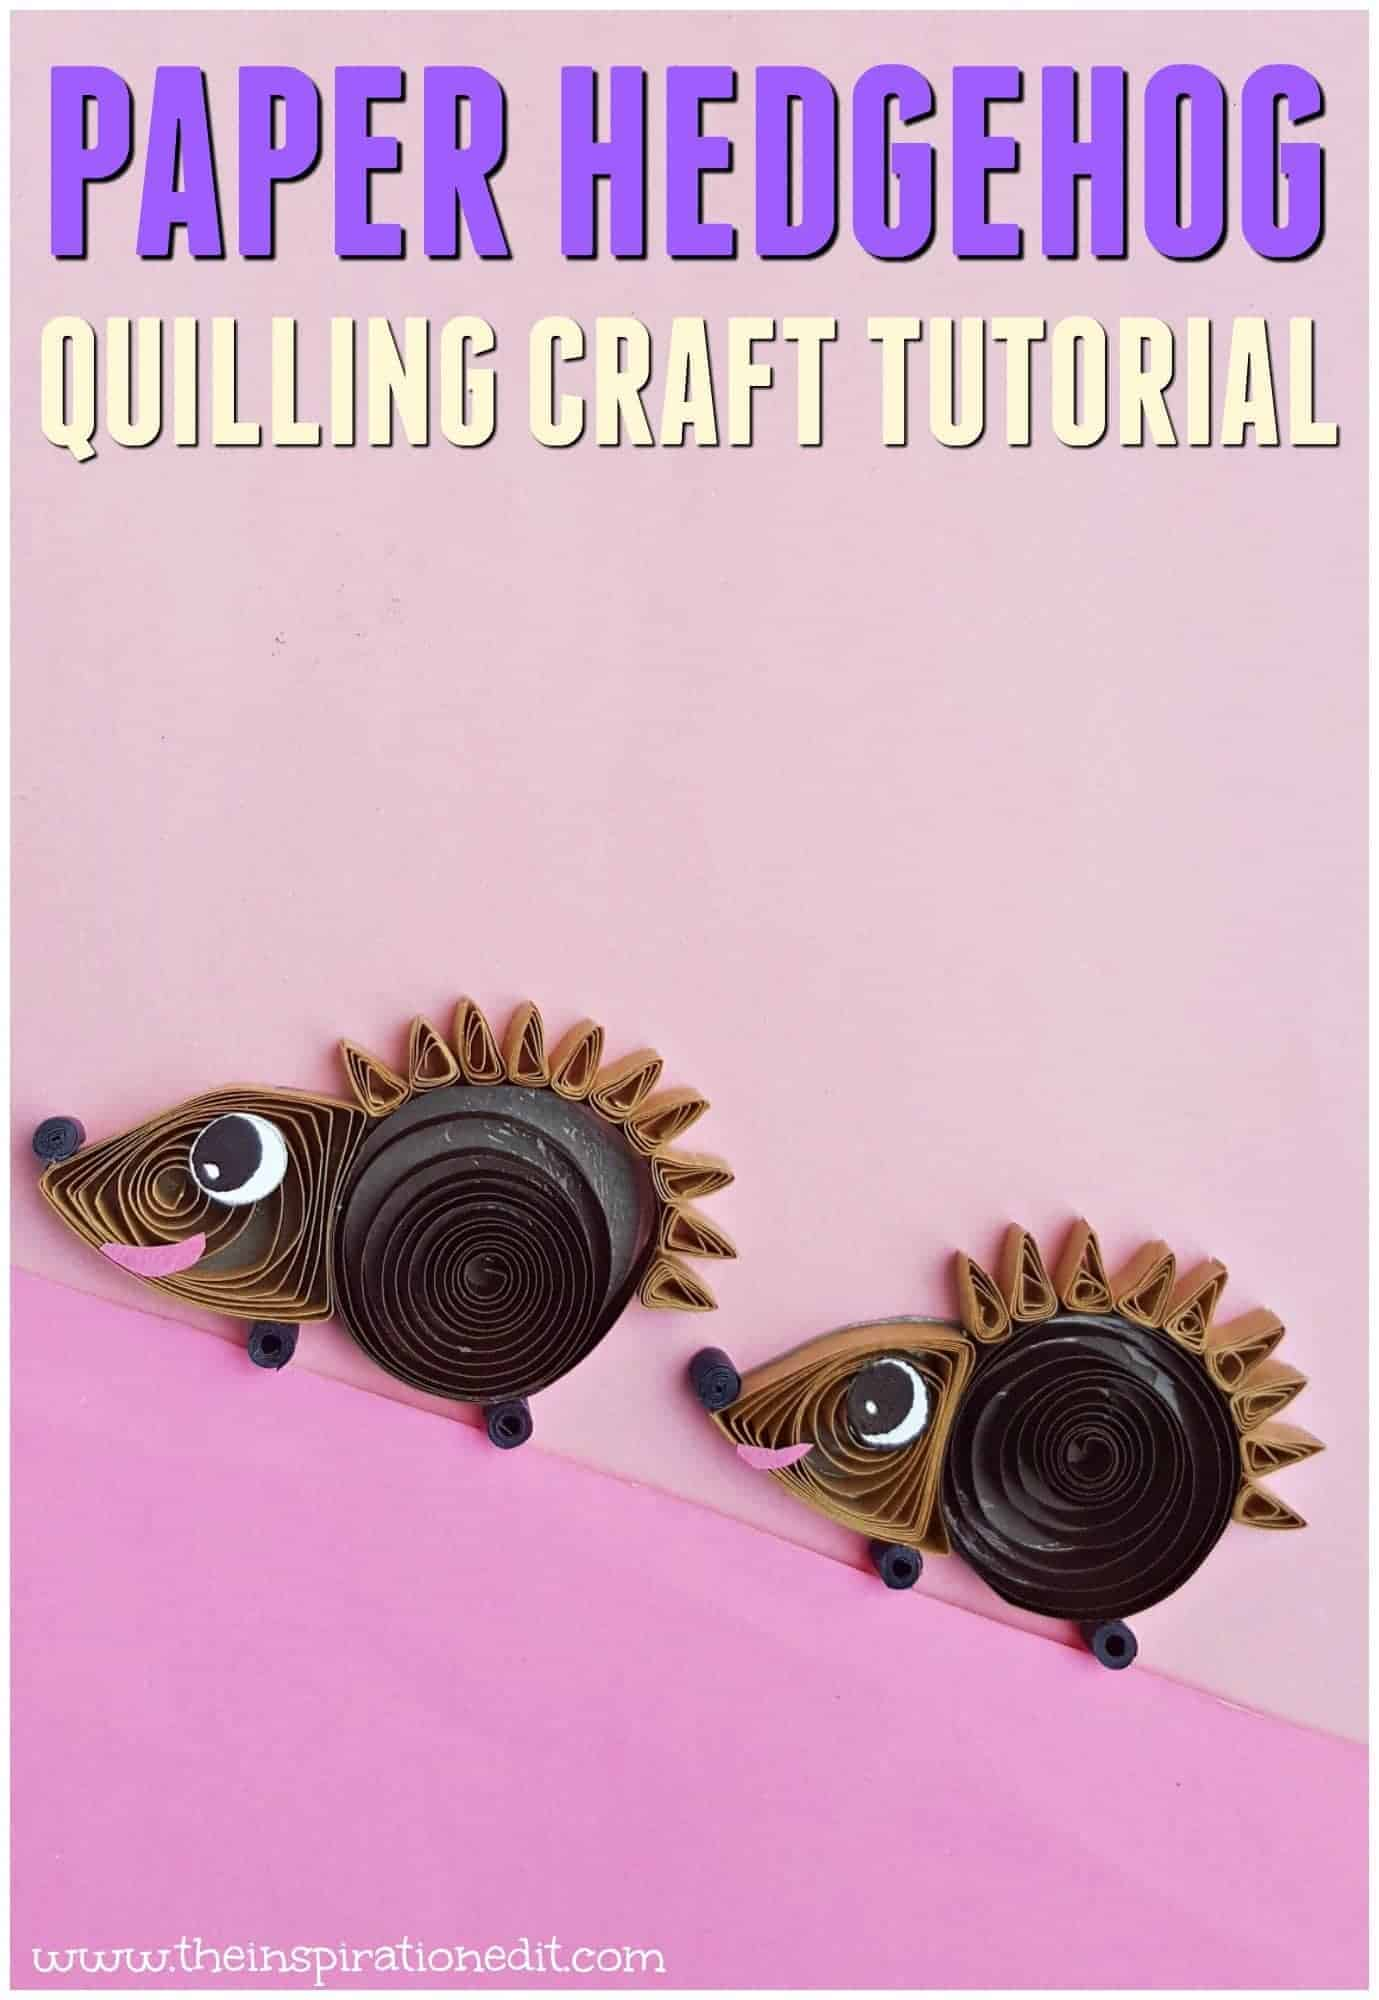 Paper Hedgehog quilling craft